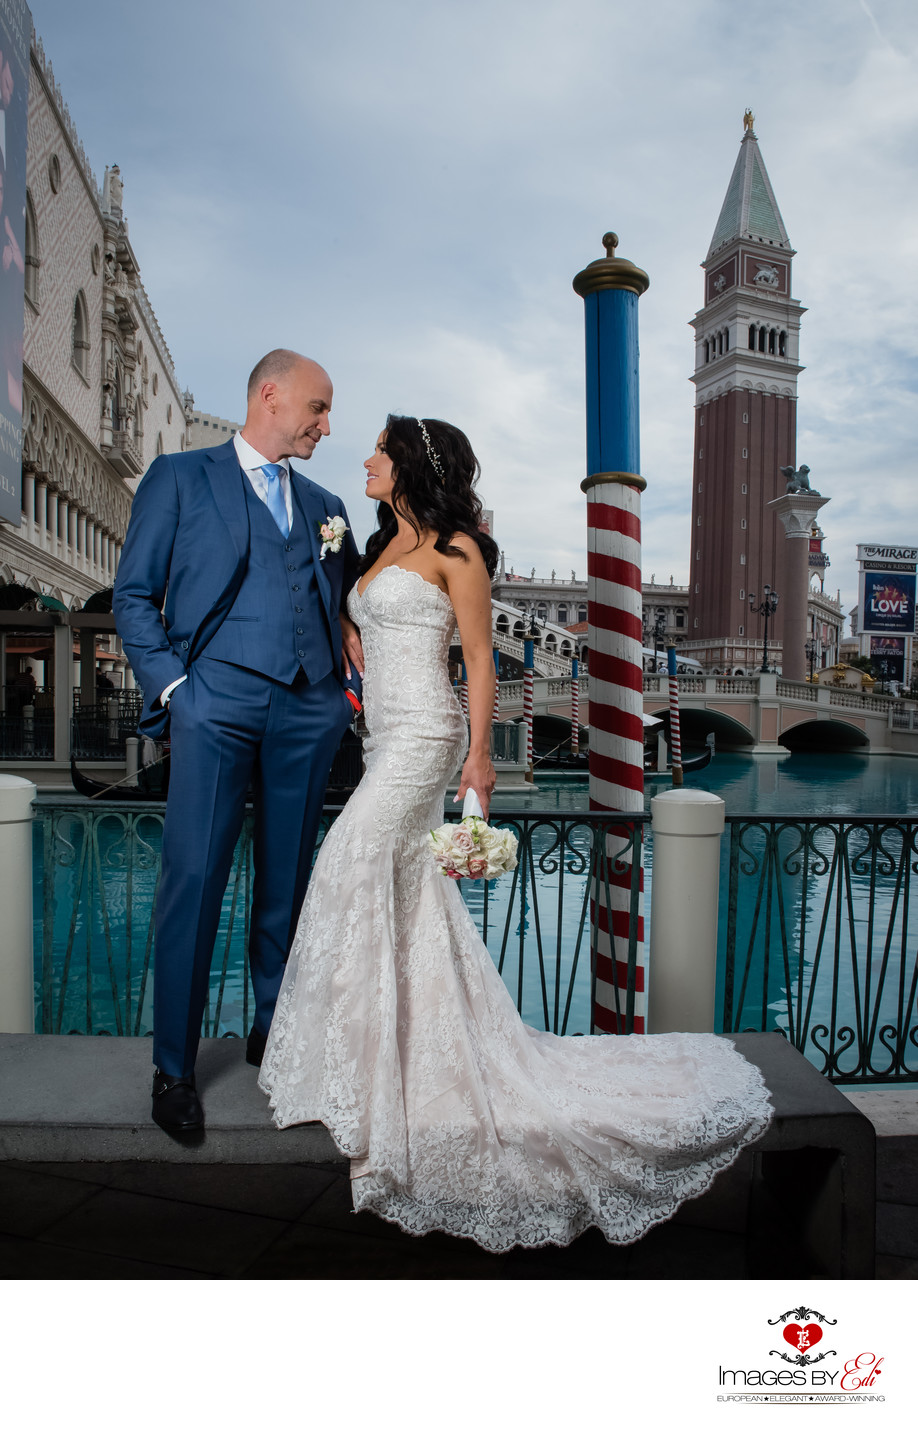 Wedding Photo from Venetian Hotel Las Vegas